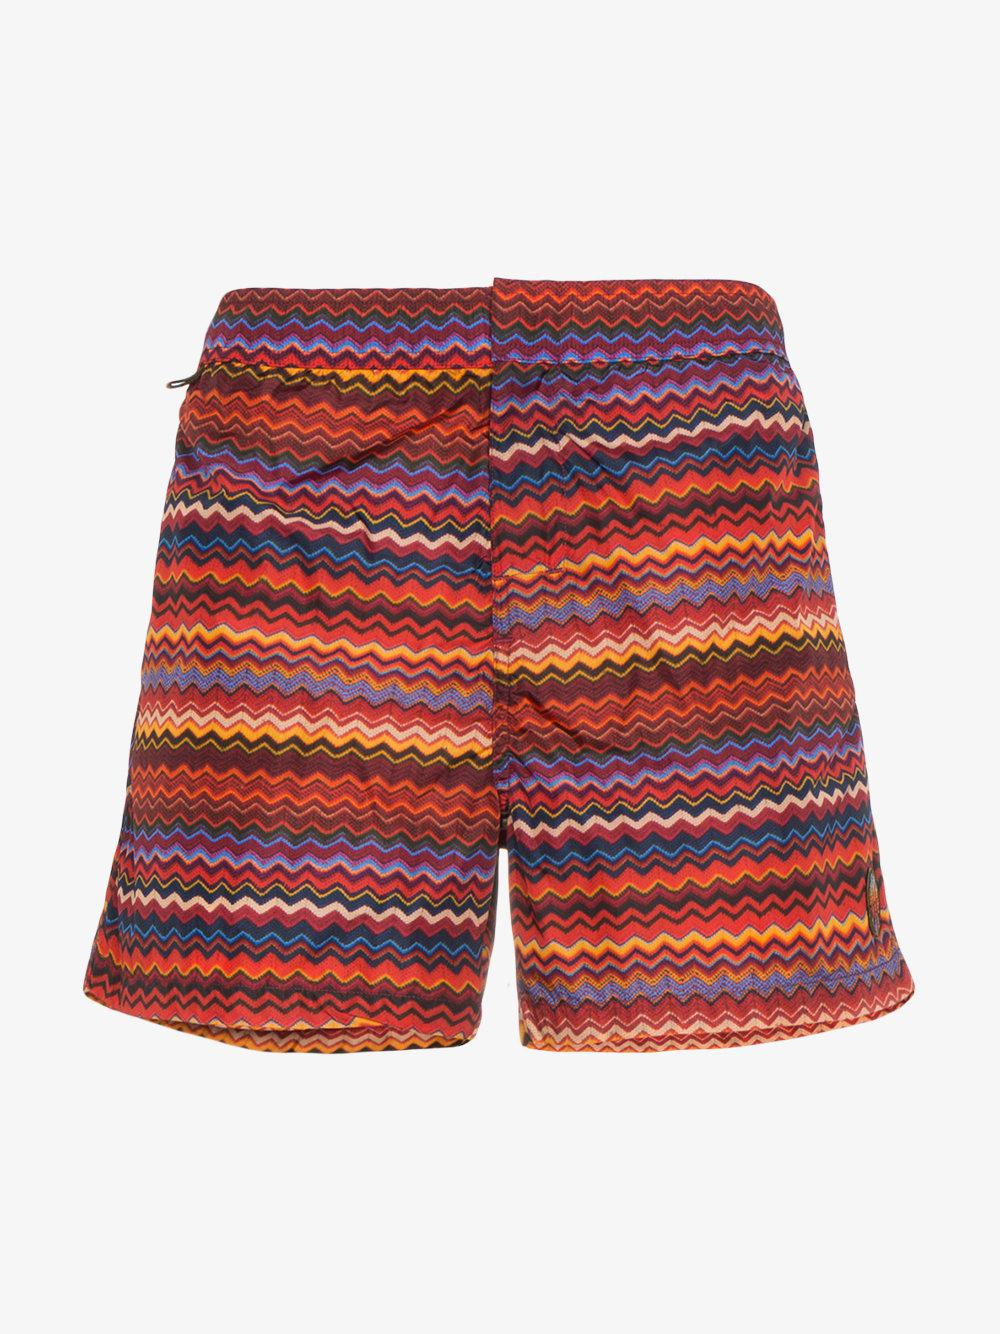 Small Zig Zag Swimshorts - Multicolour Missoni Buy Cheap Best Place xHArn9xQW